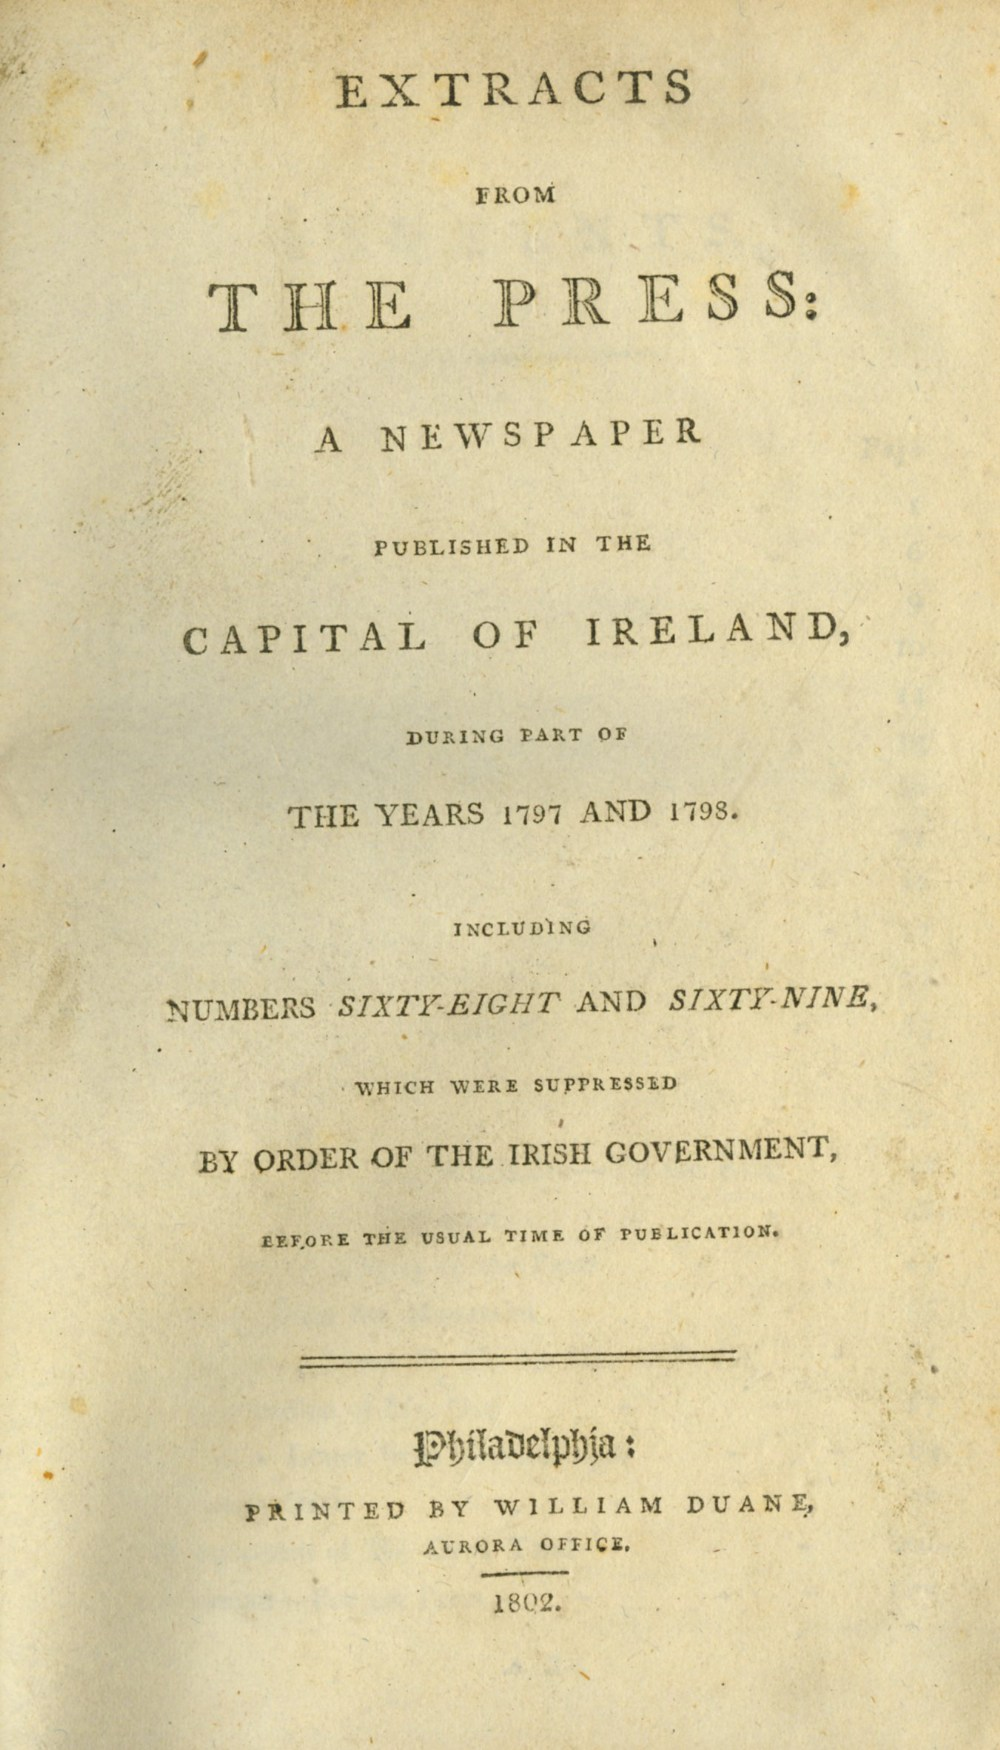 [1798 Interest] Extracts from the Press: A Newspaper Published in the Capital of Ireland During